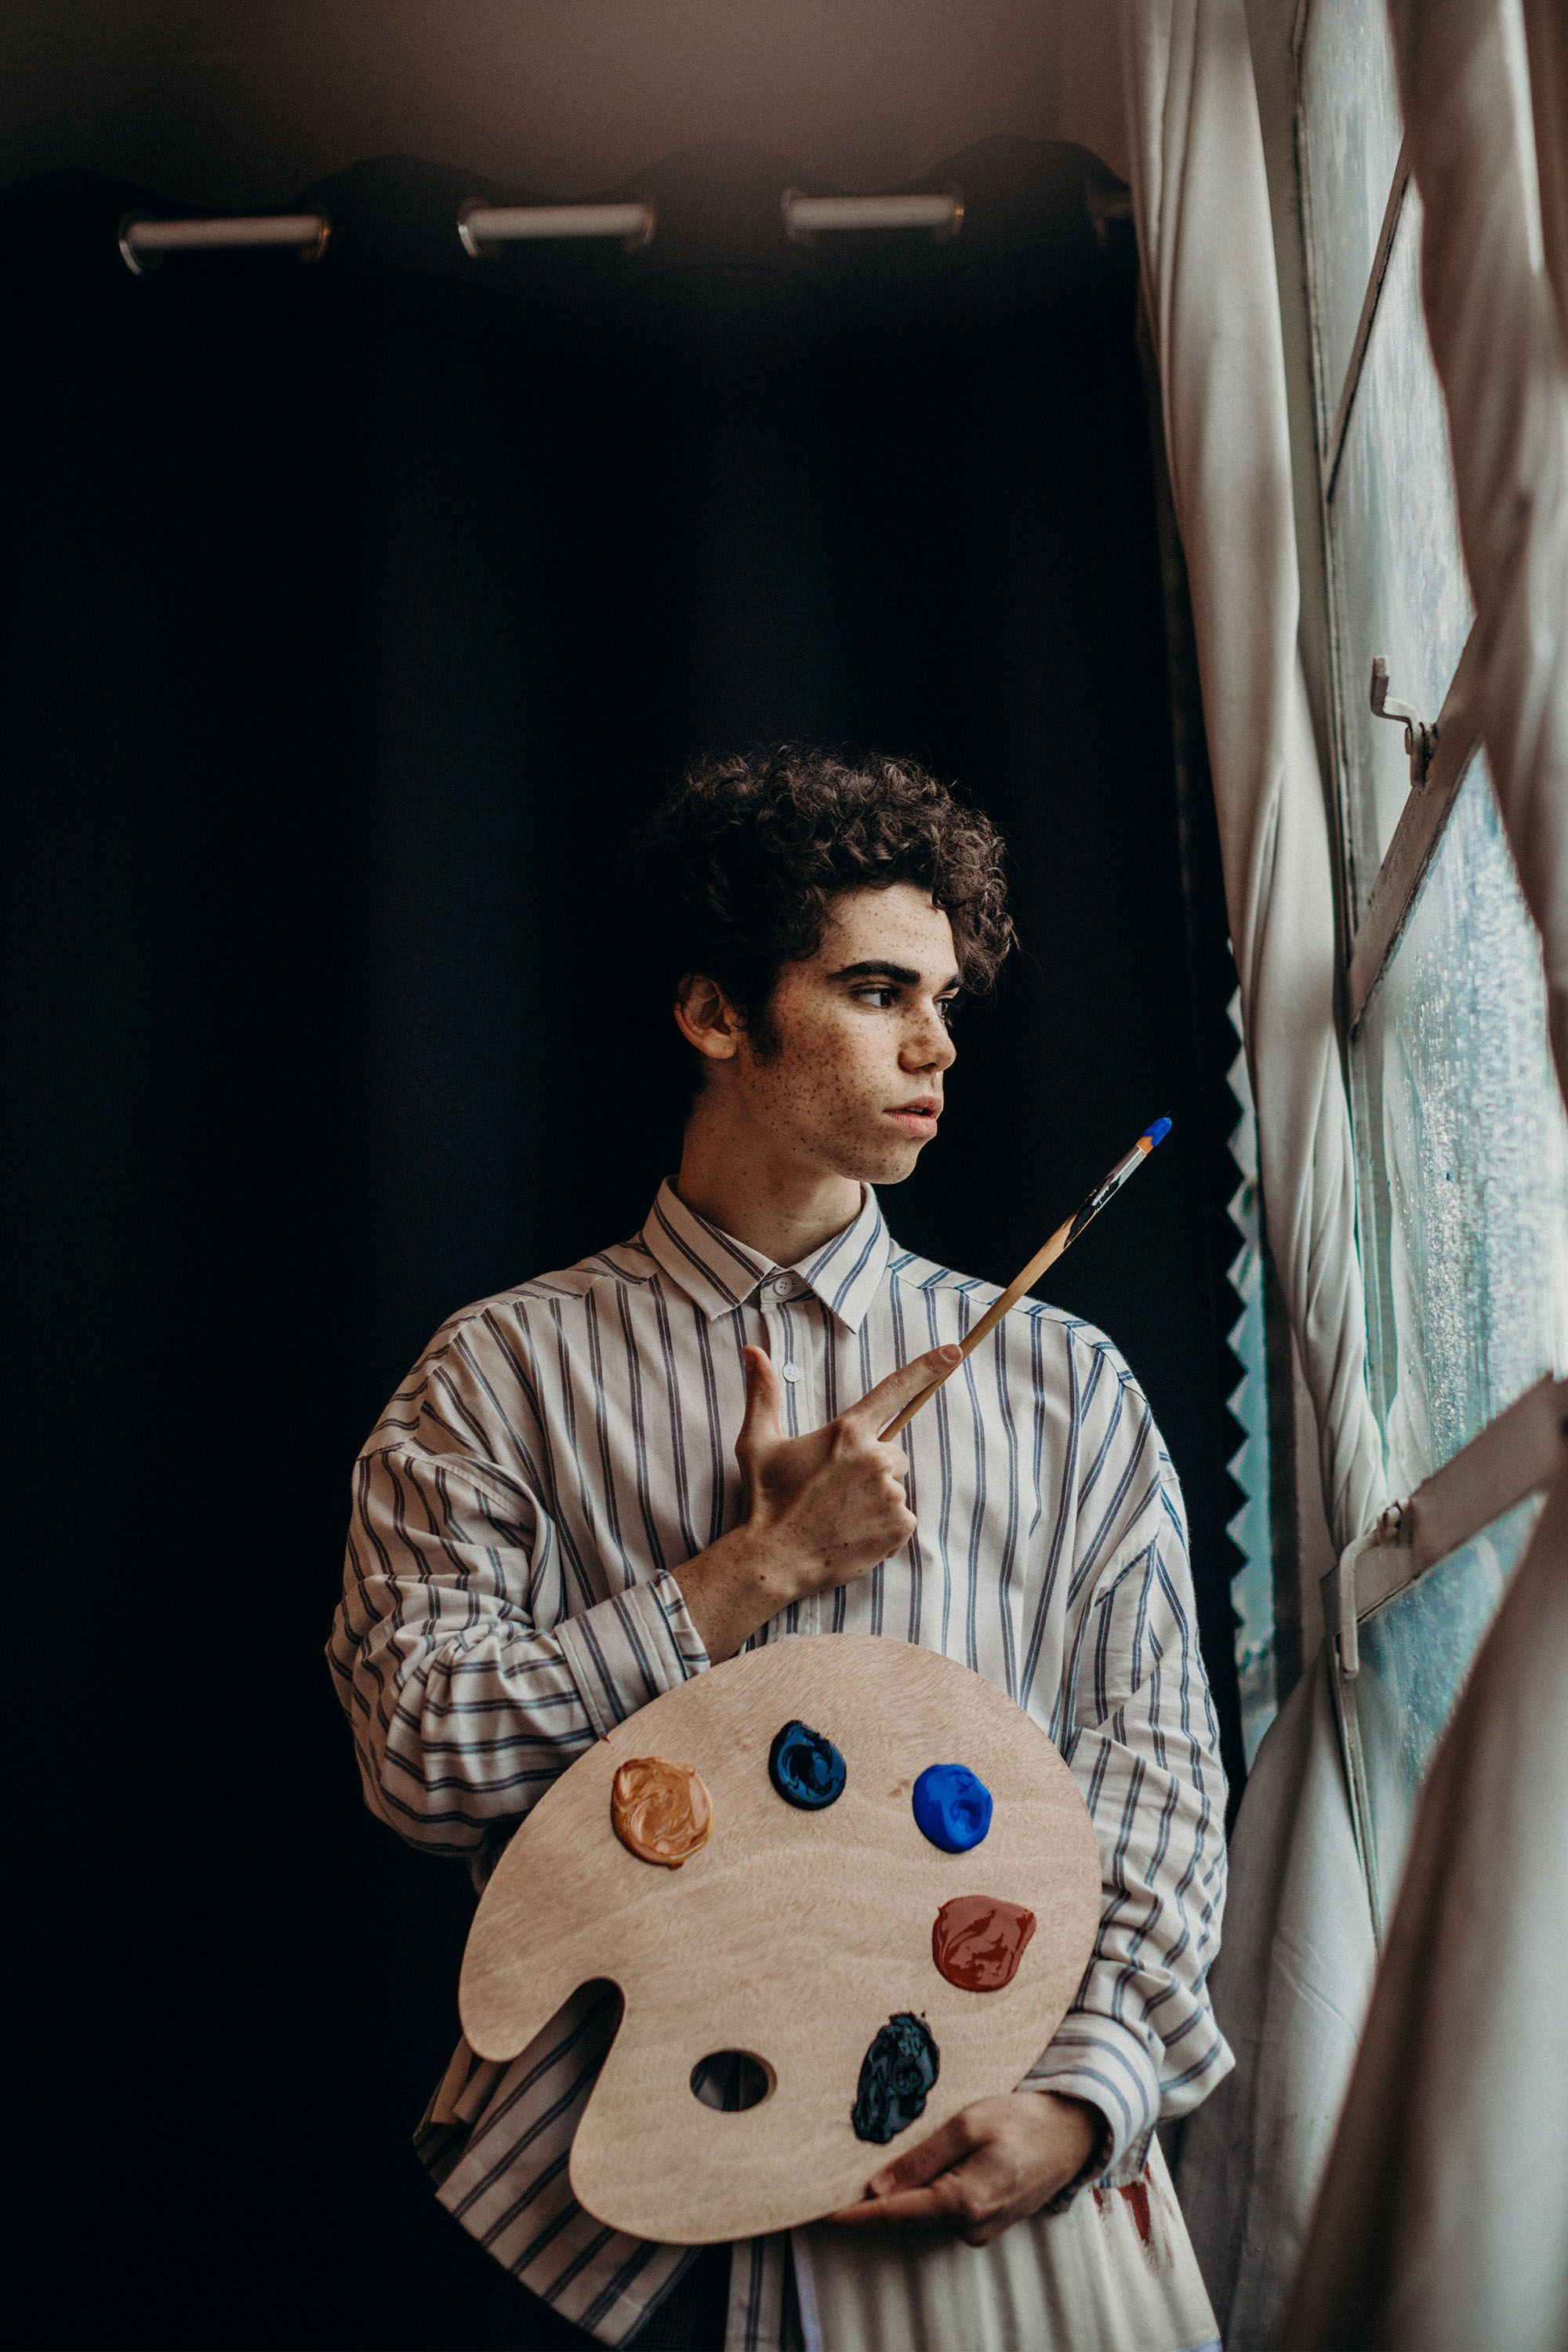 Cameron Boyce's Final Project Asks Us To Wield Peace, Not Guns #cameronboyce